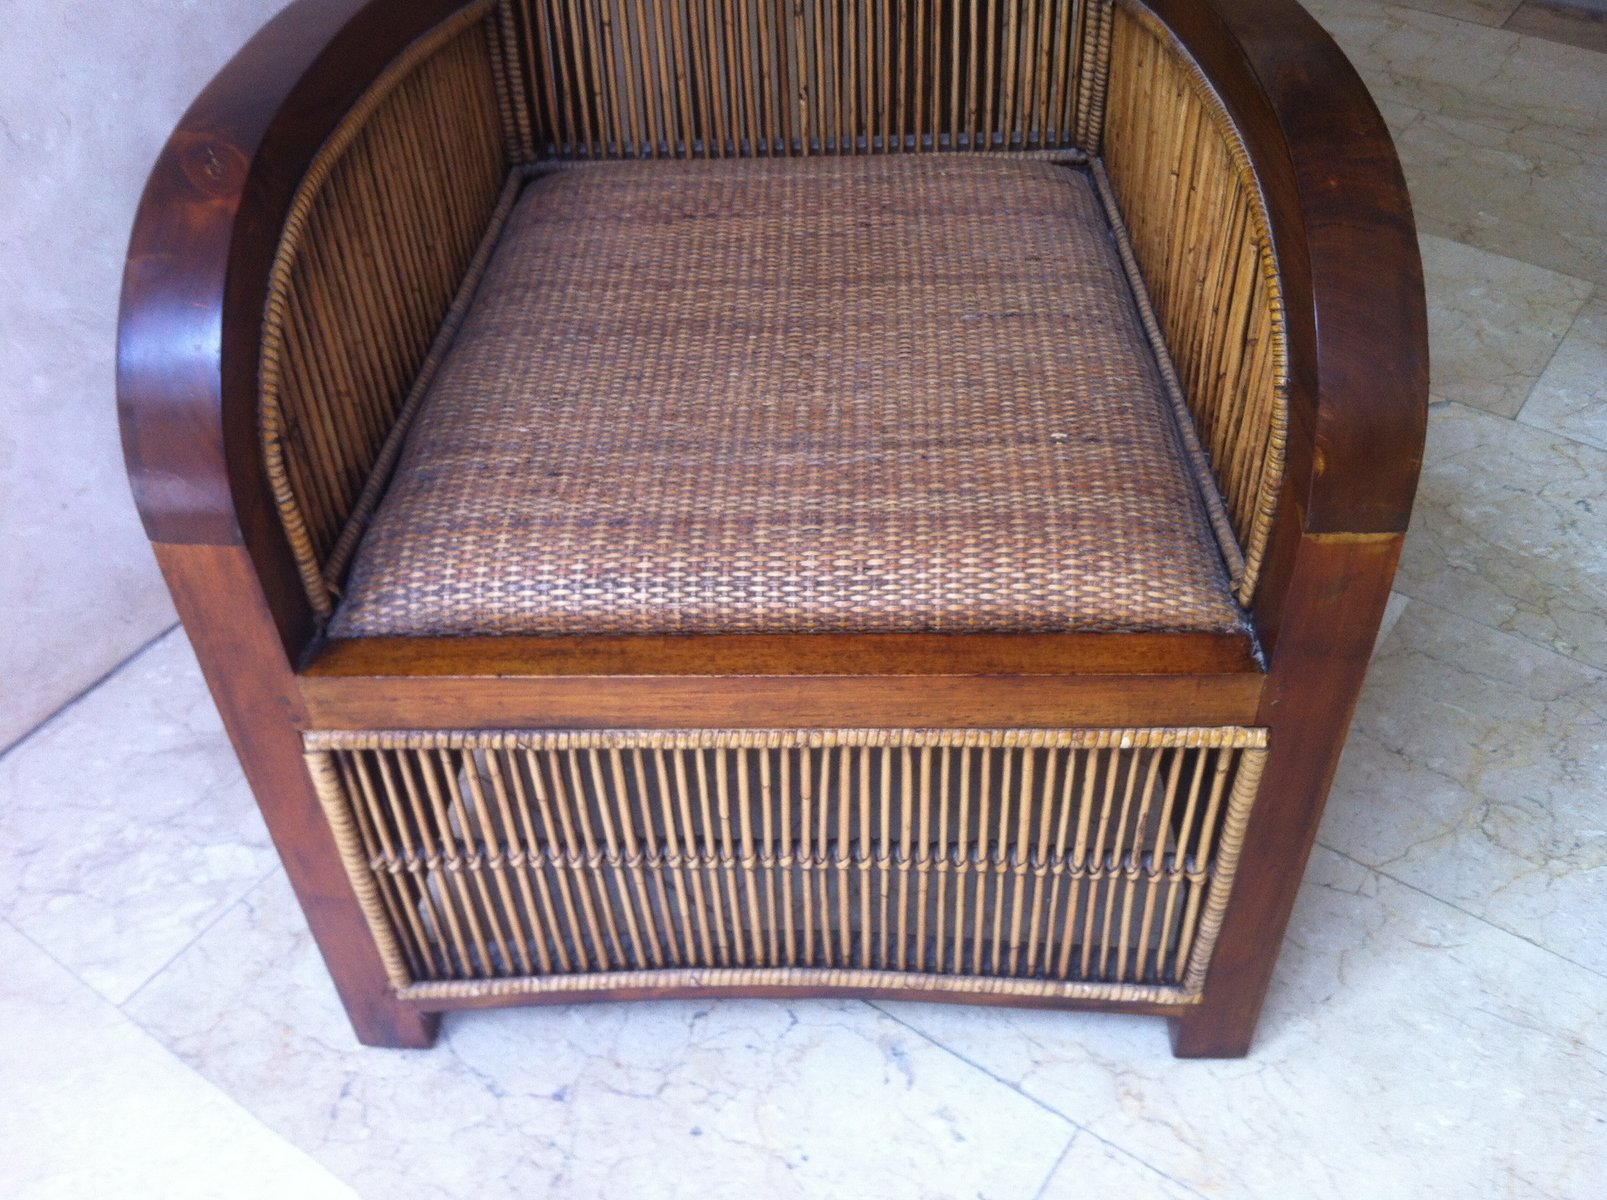 Spanish Art Deco Wood & Bamboo Club Chair 1960s for sale at Pamono